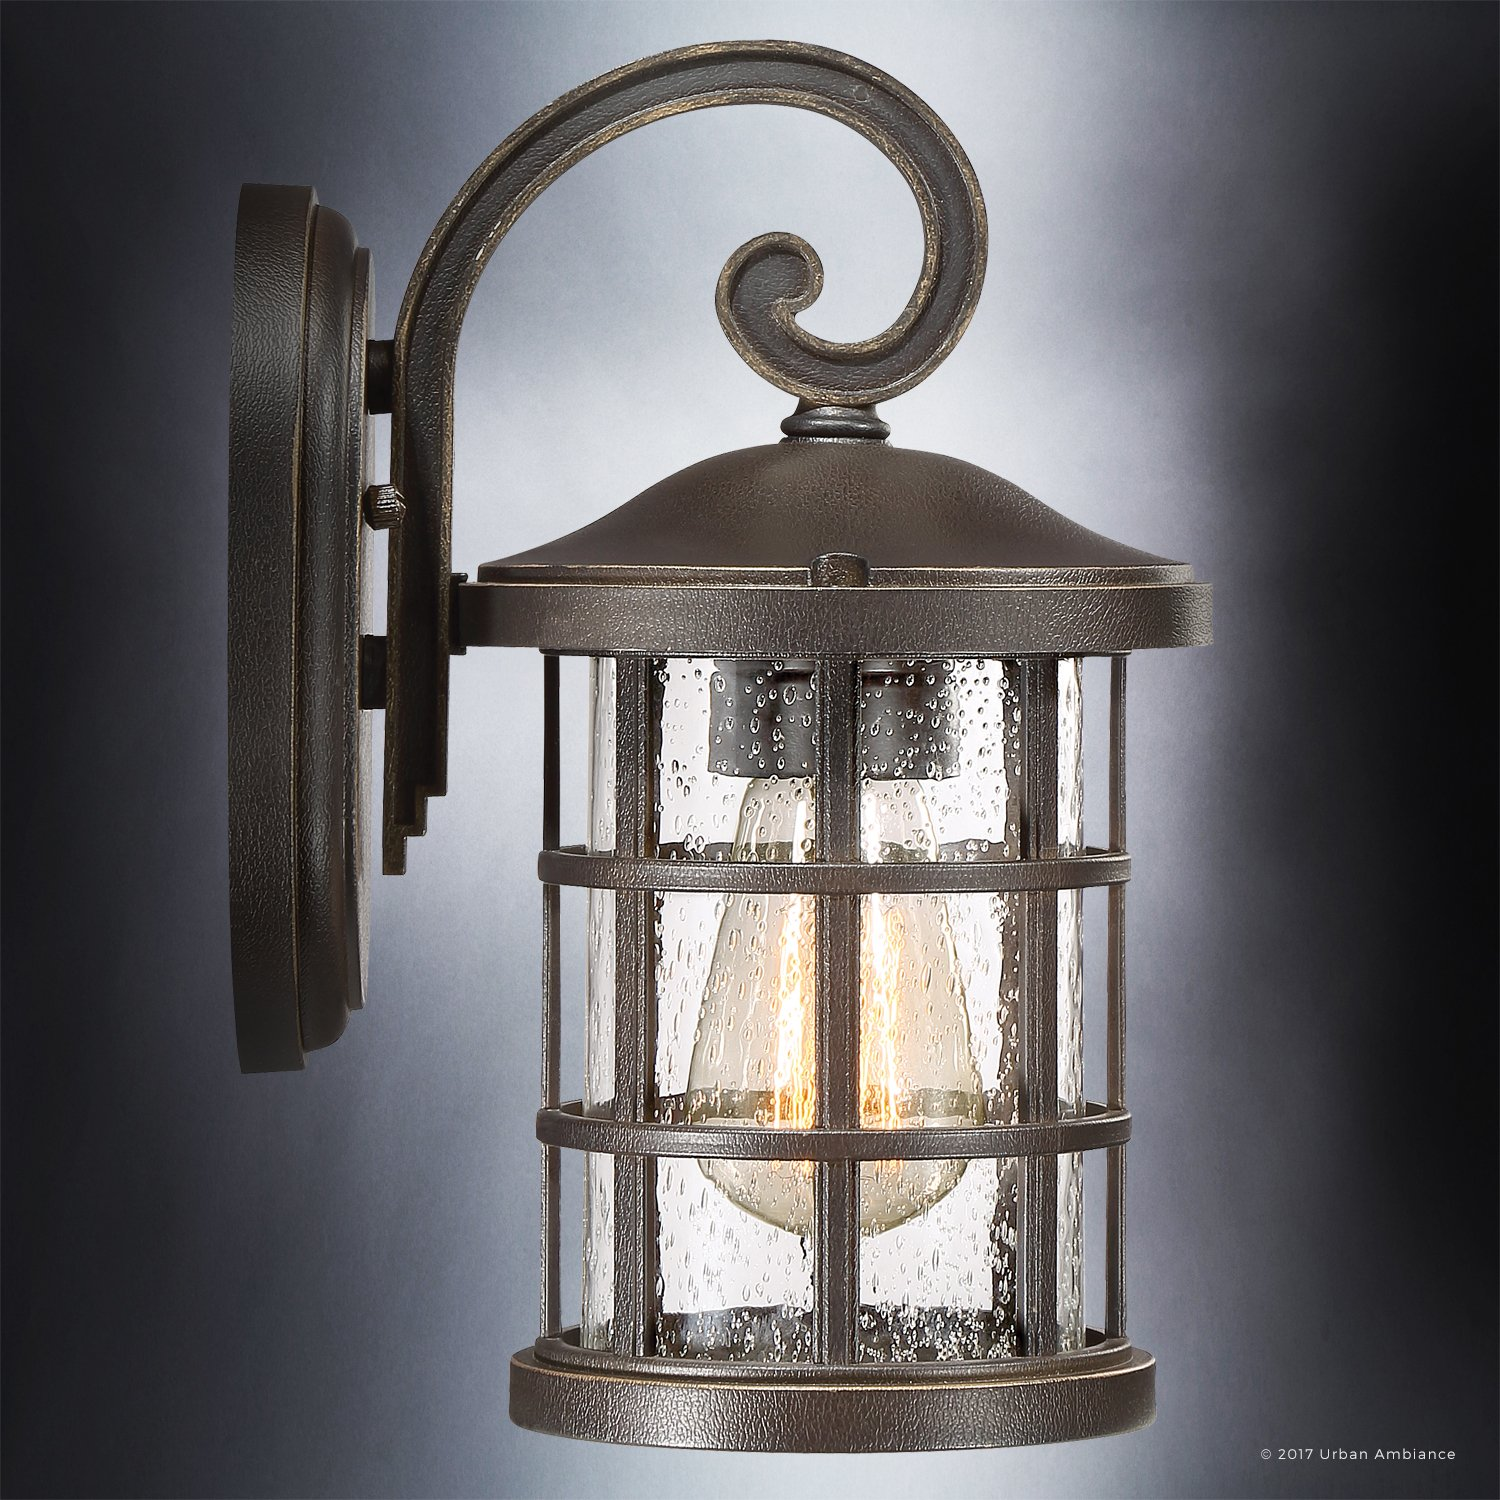 Luxury Craftsman Outdoor Wall Light, Small Size: 11'' H x 6'' W, with Tudor Style Elements, Wrought Iron Design, Oil Rubbed Parisian Bronze Finish and Seeded Glass, UQL1041 by Urban Ambiance by Urban Ambiance (Image #4)